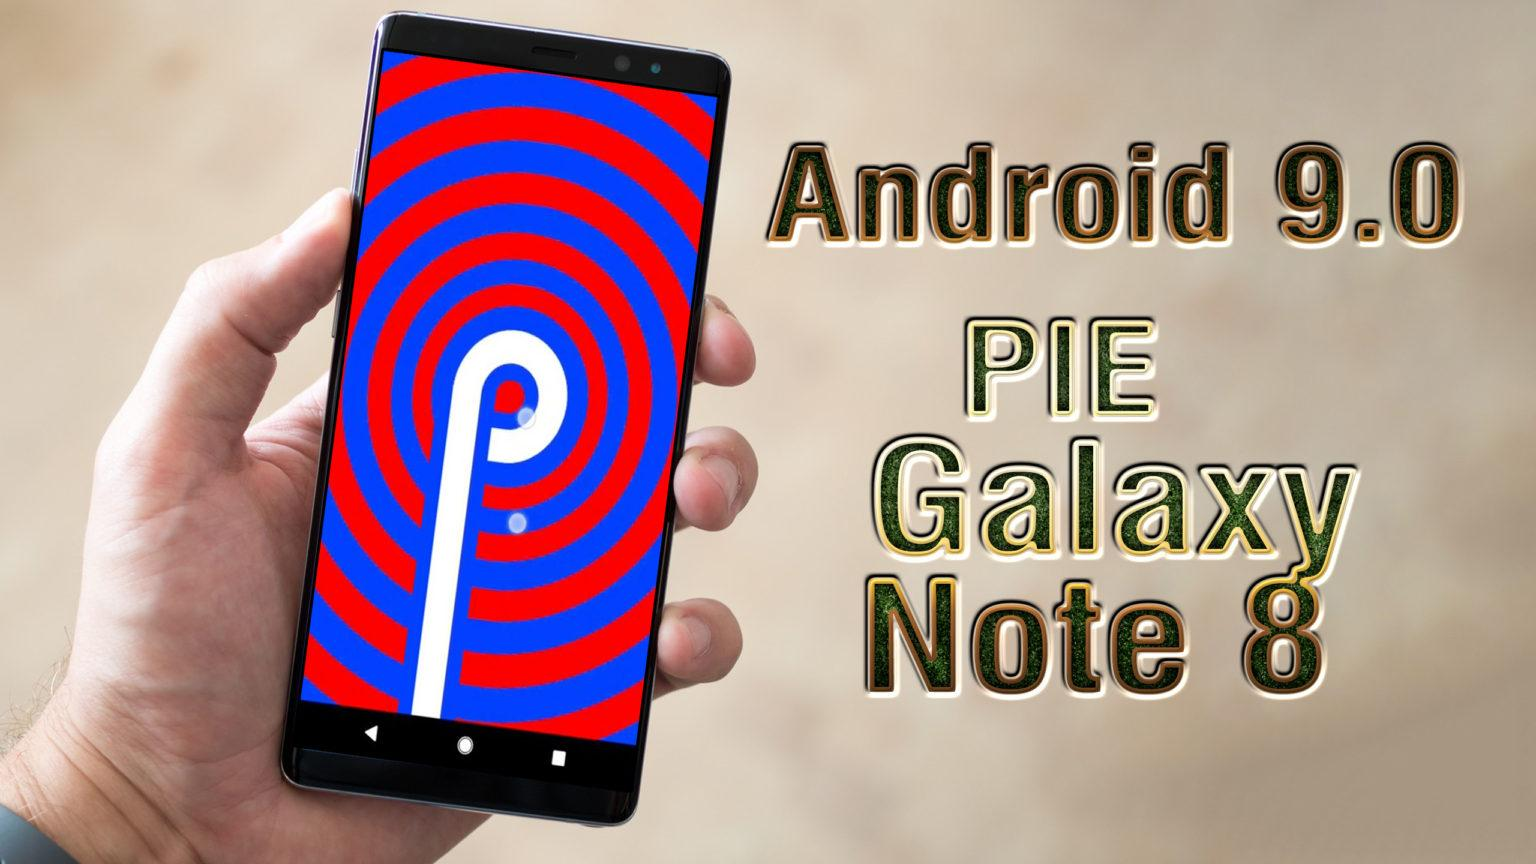 Samsung galaxy note 9 is no longer the latest galaxy note device in the market now that it has been succeeded by note 10 and note 10 plus handsets, but it's still right in the mix for security and os updates alike. Install Android 9.0 Pie on Galaxy Note 8 (LineageOS 16 ...